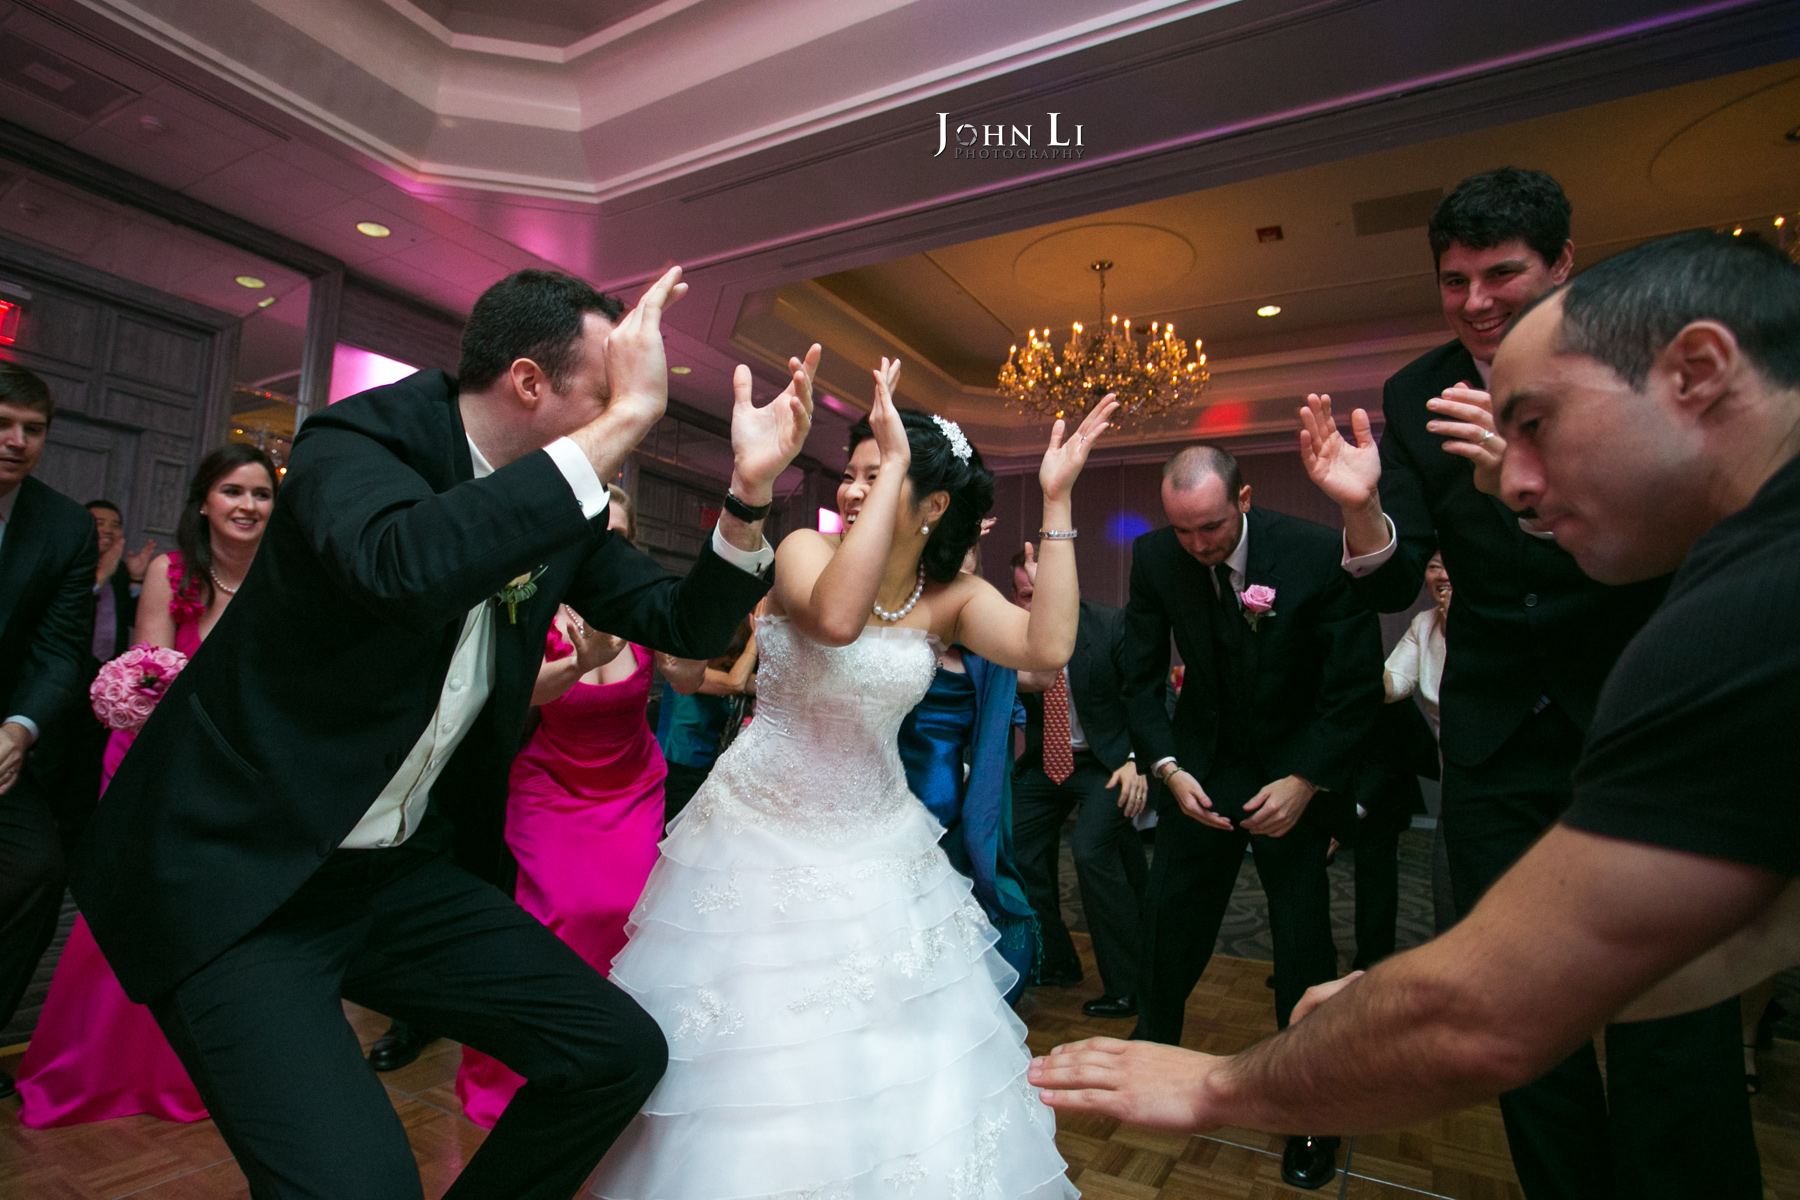 How To Dance At A Wedding